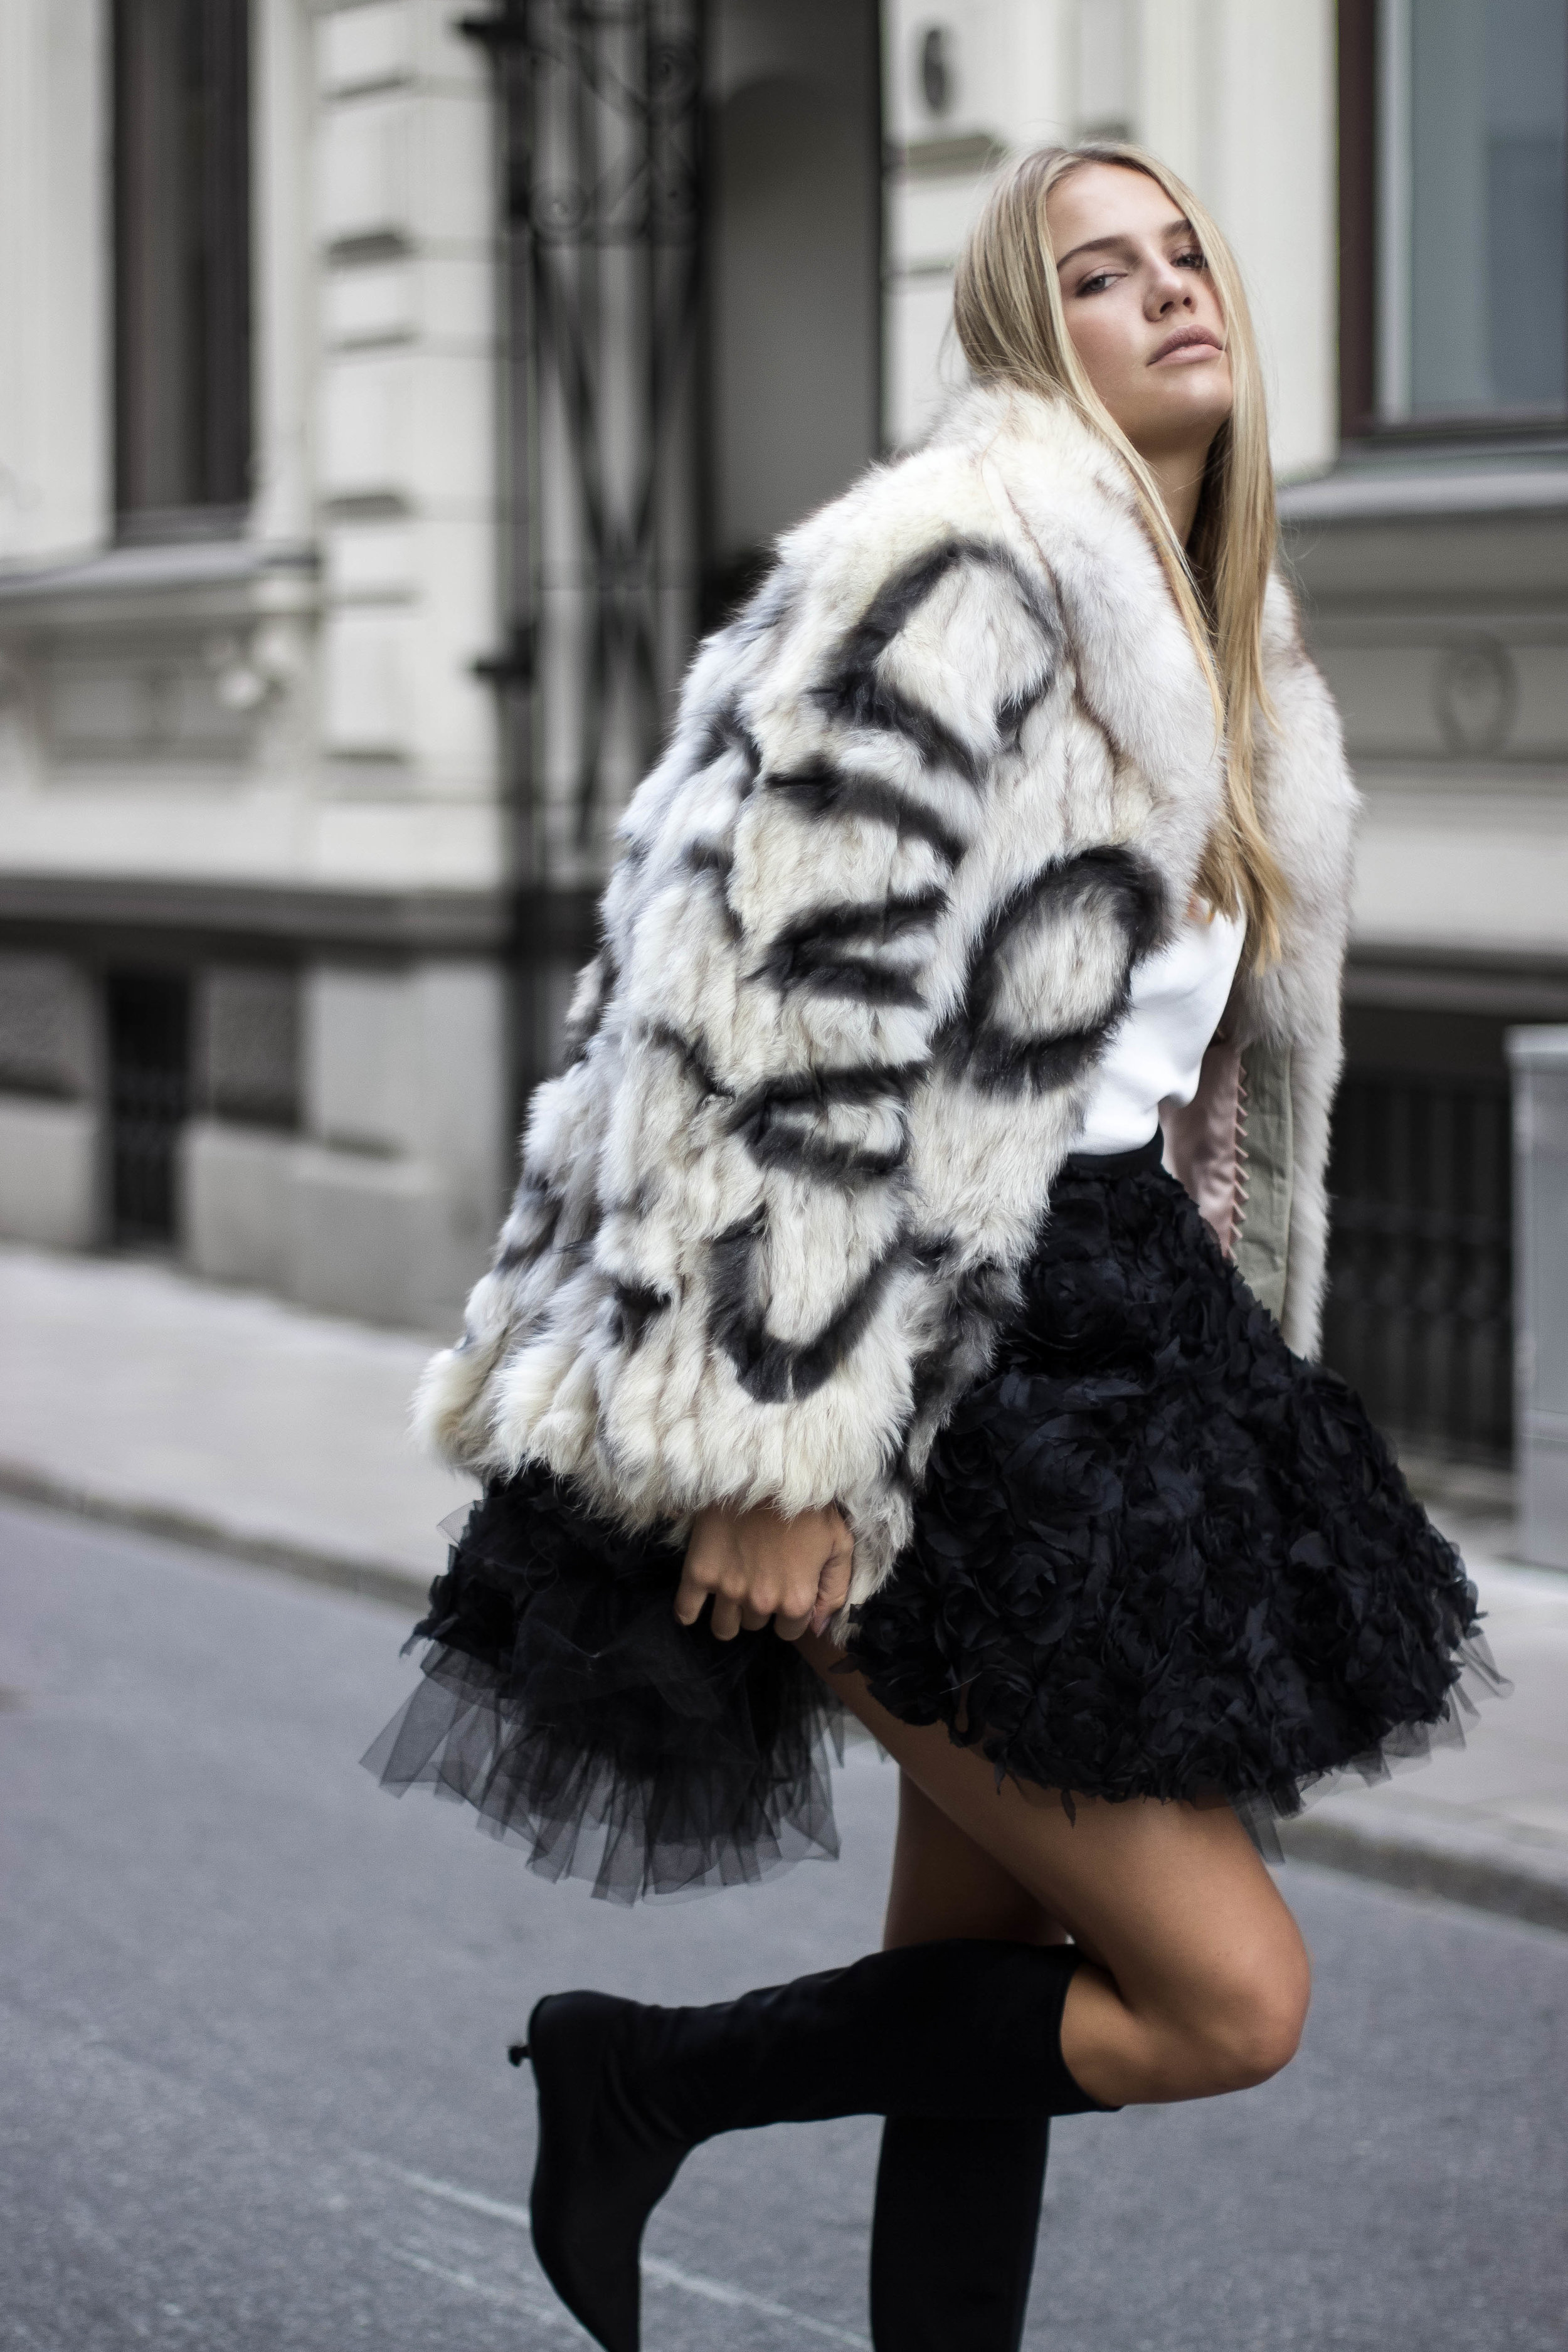 sanderssonla-aboutthatlook-fashion-punkrock-antifashion-jennysandersson